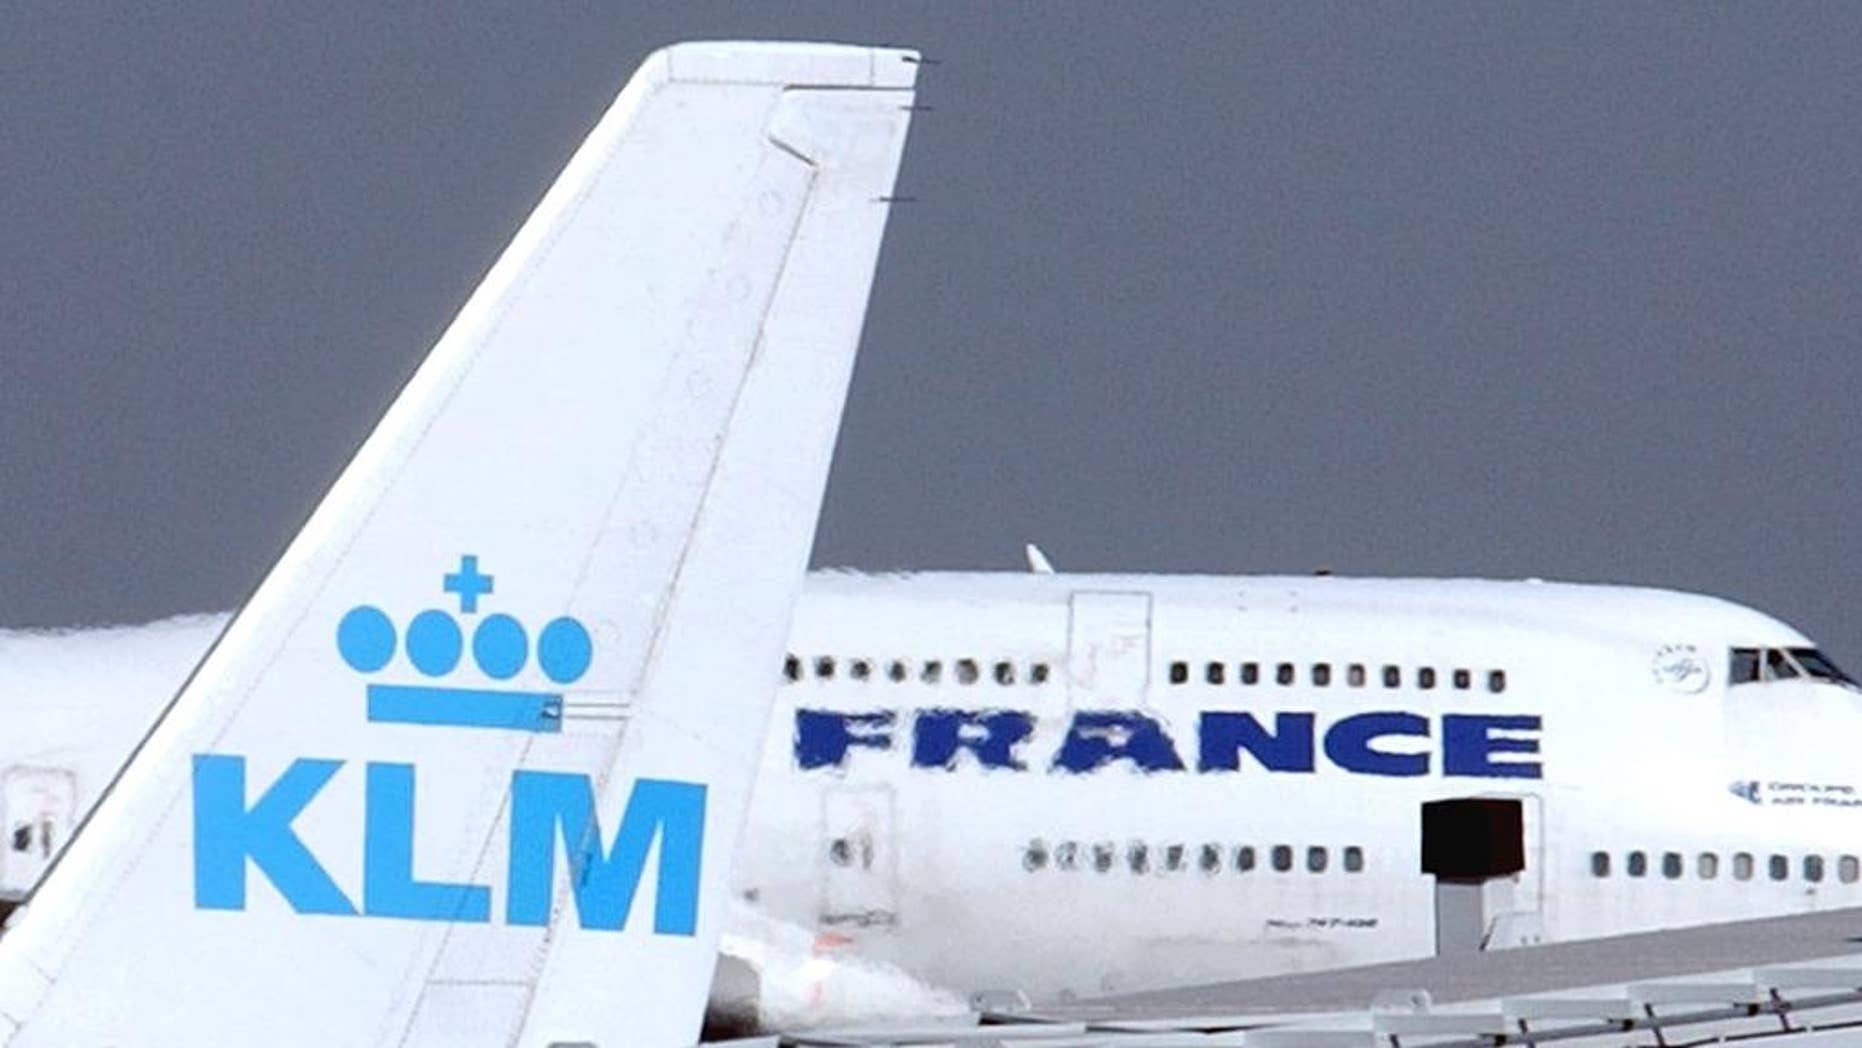 "FILE -- In this Sept. 30, 2003 file photo, an Air France jumbo jet rolls behind the tail of a KLM Royal Dutch airliner at Charles de Gaulle airport in Roissy, north of Paris. KLM said Wednesday, Sept. 14, 2016 that it will temporarily suspend flights to and from Cairo in January, citing ""economic reasons."" The Royal Dutch Airlines' statement said the devaluation of the Egyptian pound and restrictions imposed by the country's central bank on the transfer of foreign currency out of Egypt are behind the decision. (AP Photo/Remy de la Mauviniere, File)"